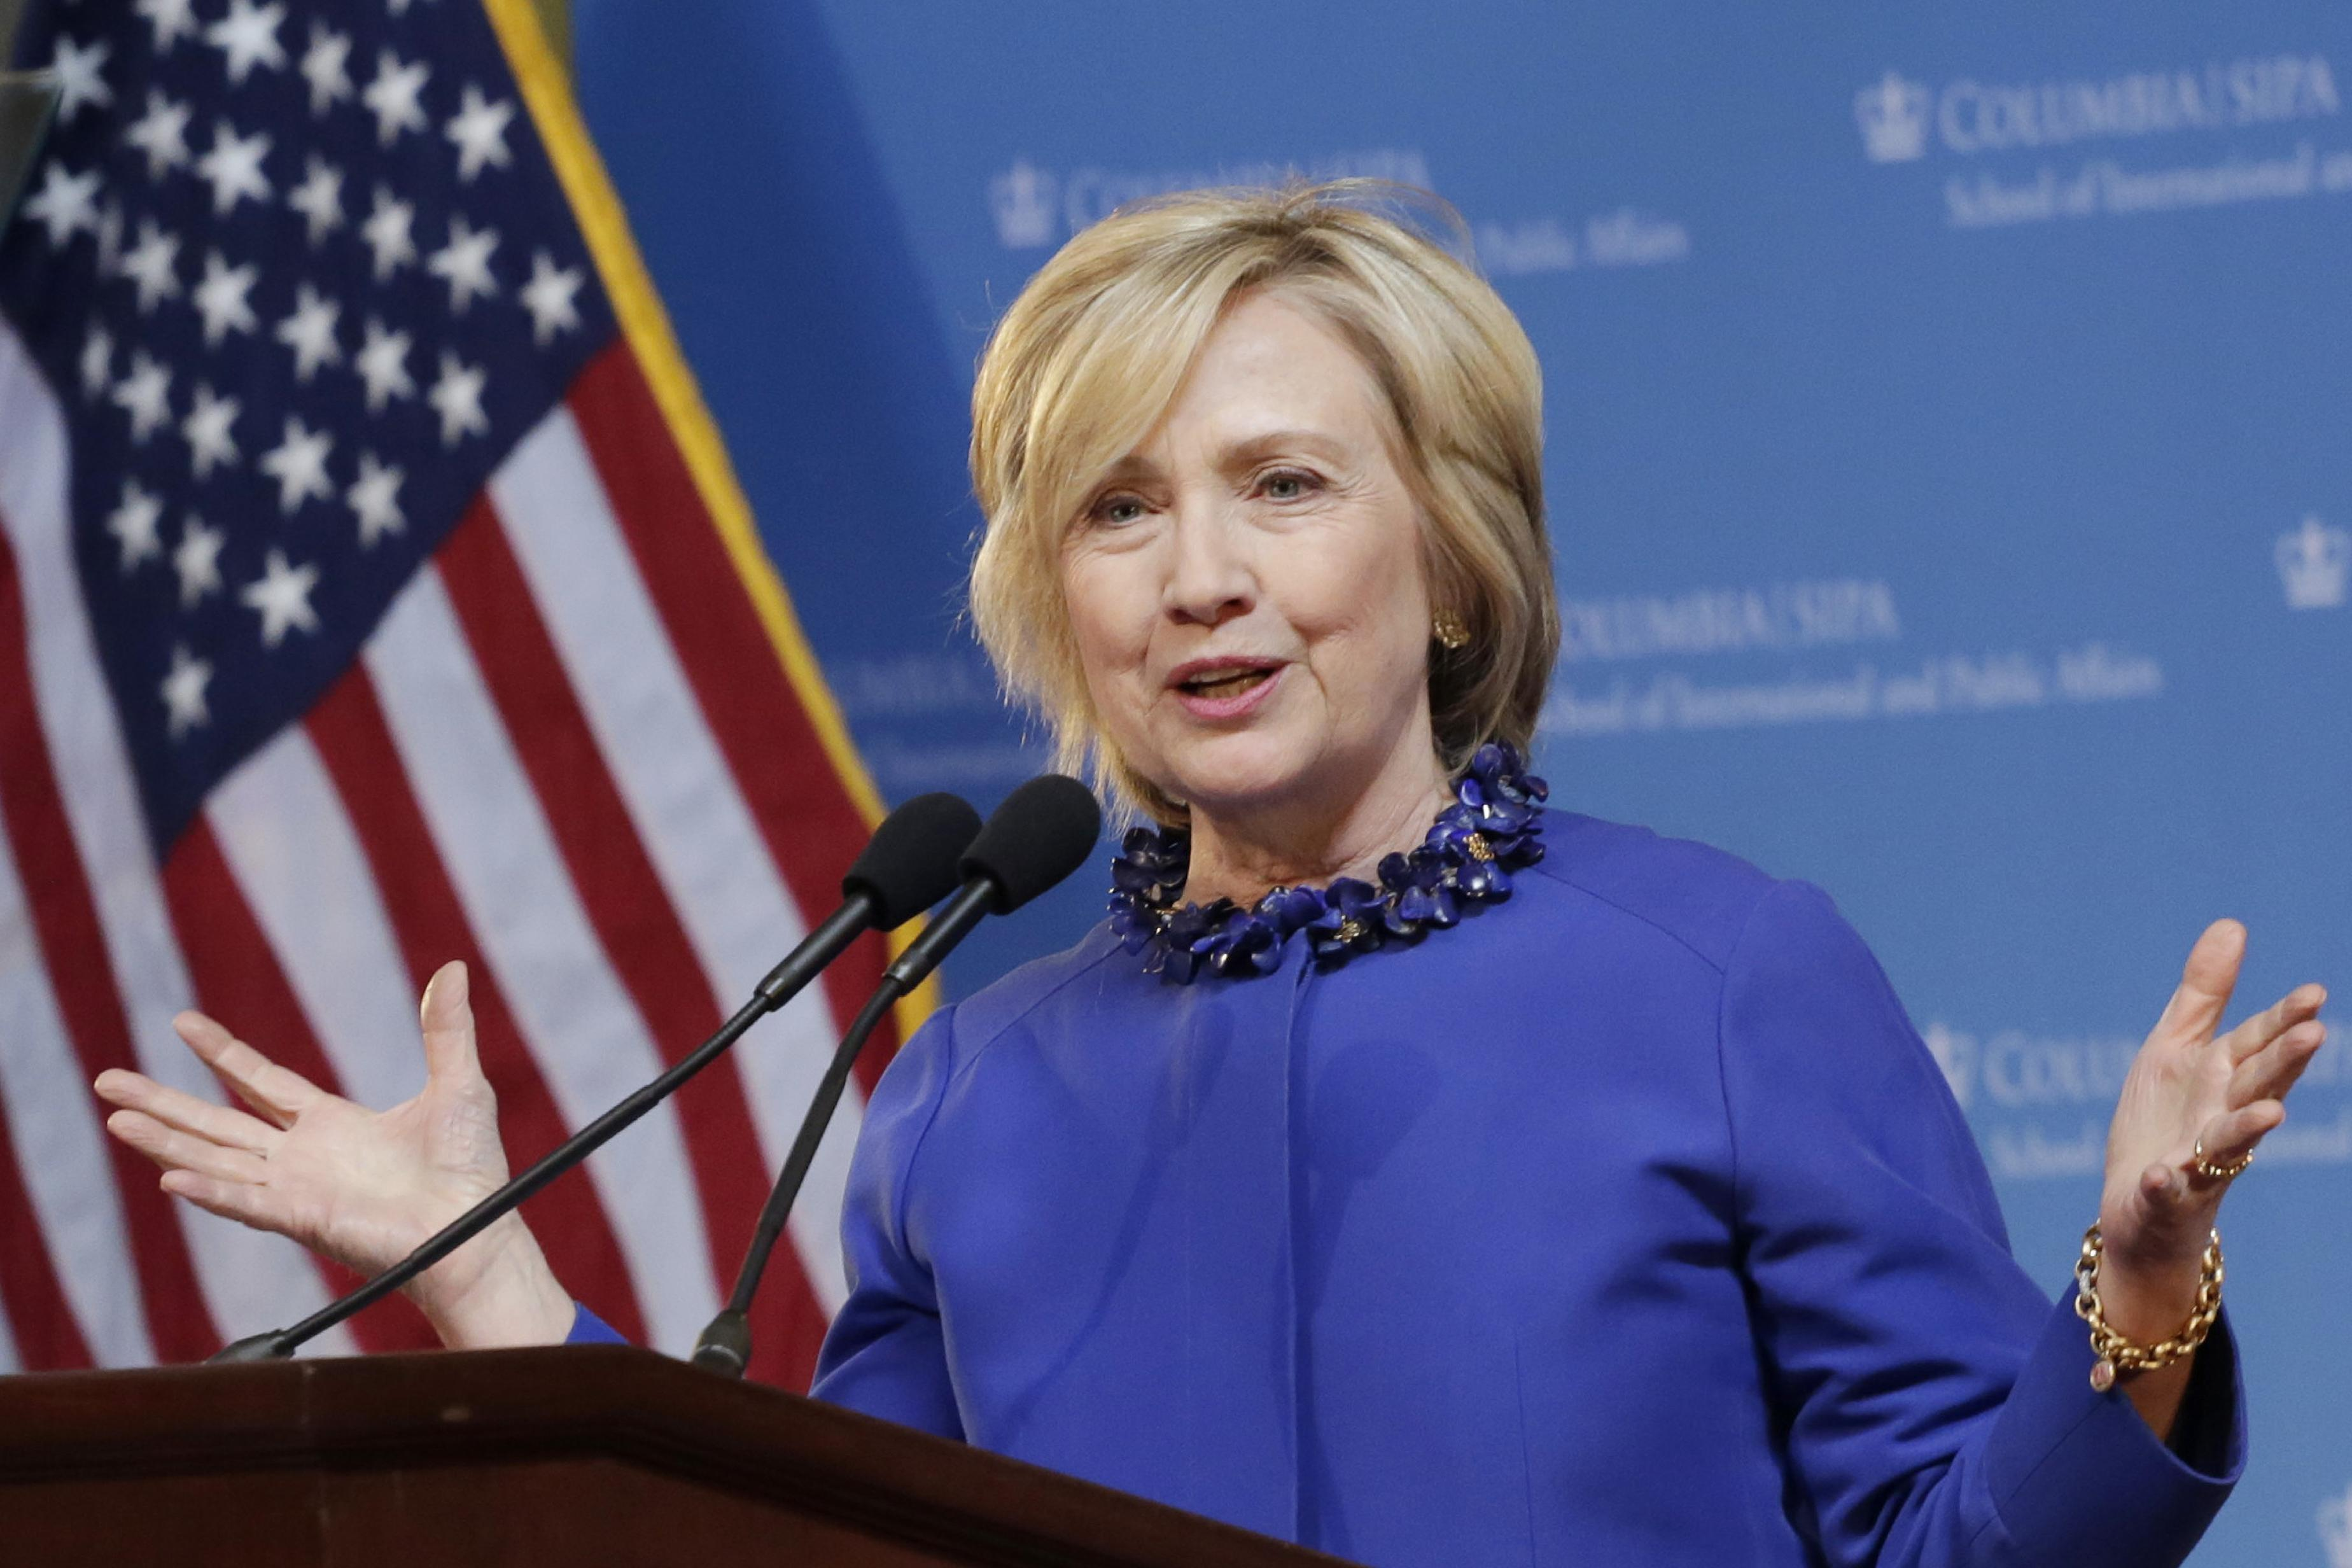 Clinton to call for 'full and equal path to citizenship'